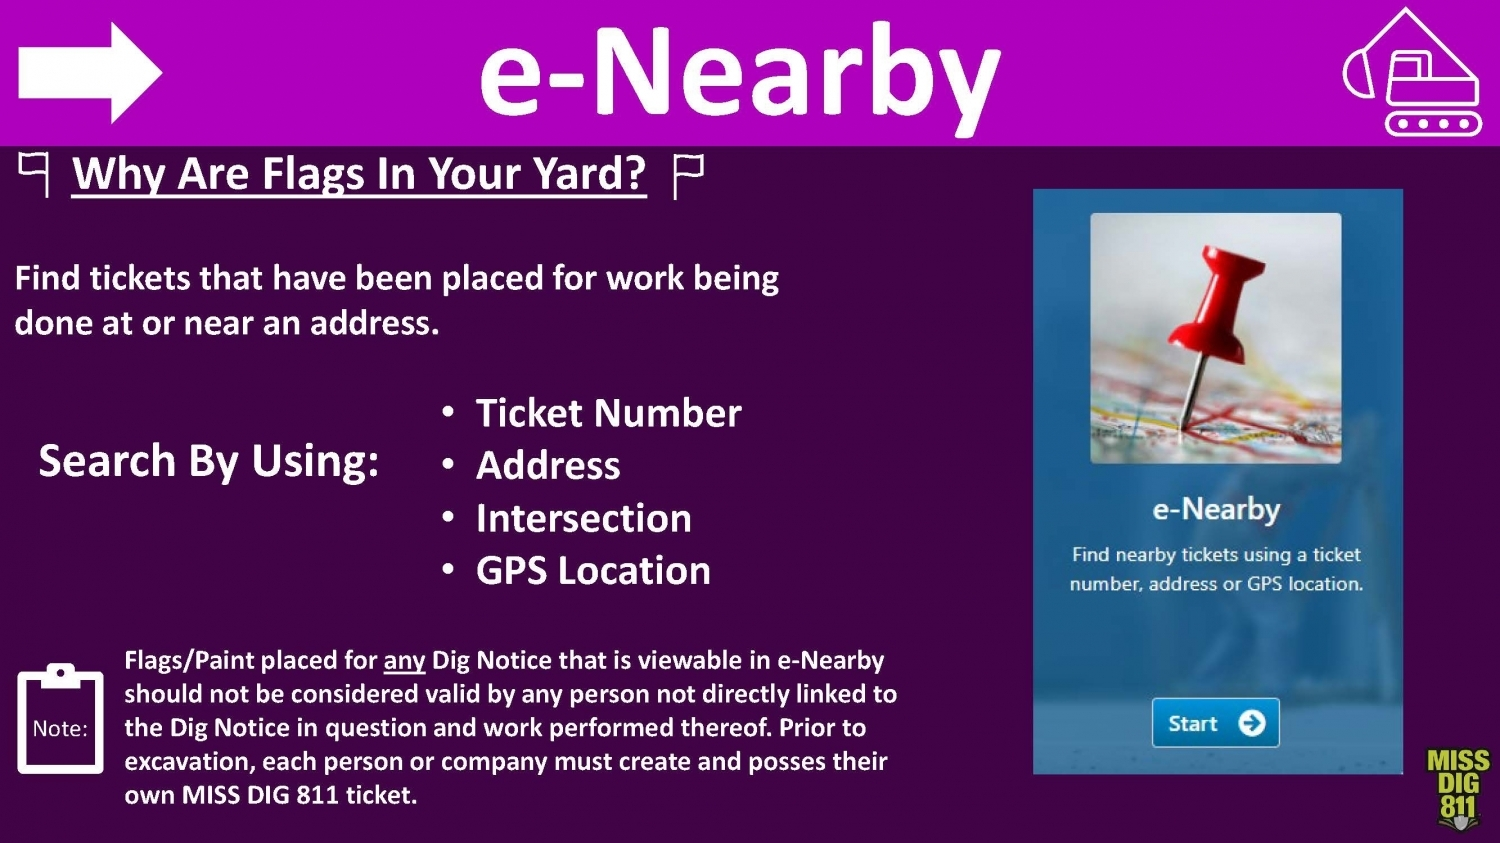 eSuite - MISS DIG 811 - f-24-8-18605637_zcRzgdje_e-Nearby_Poster